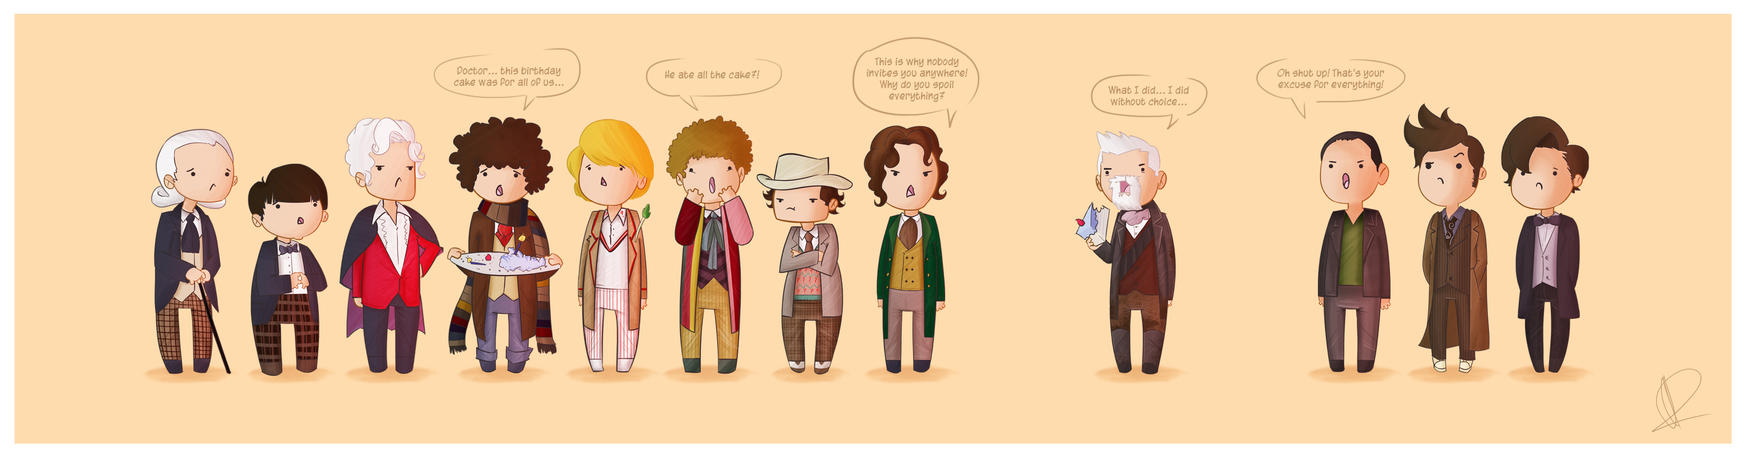 Doctor Who 50th Anniversary by Blizarro